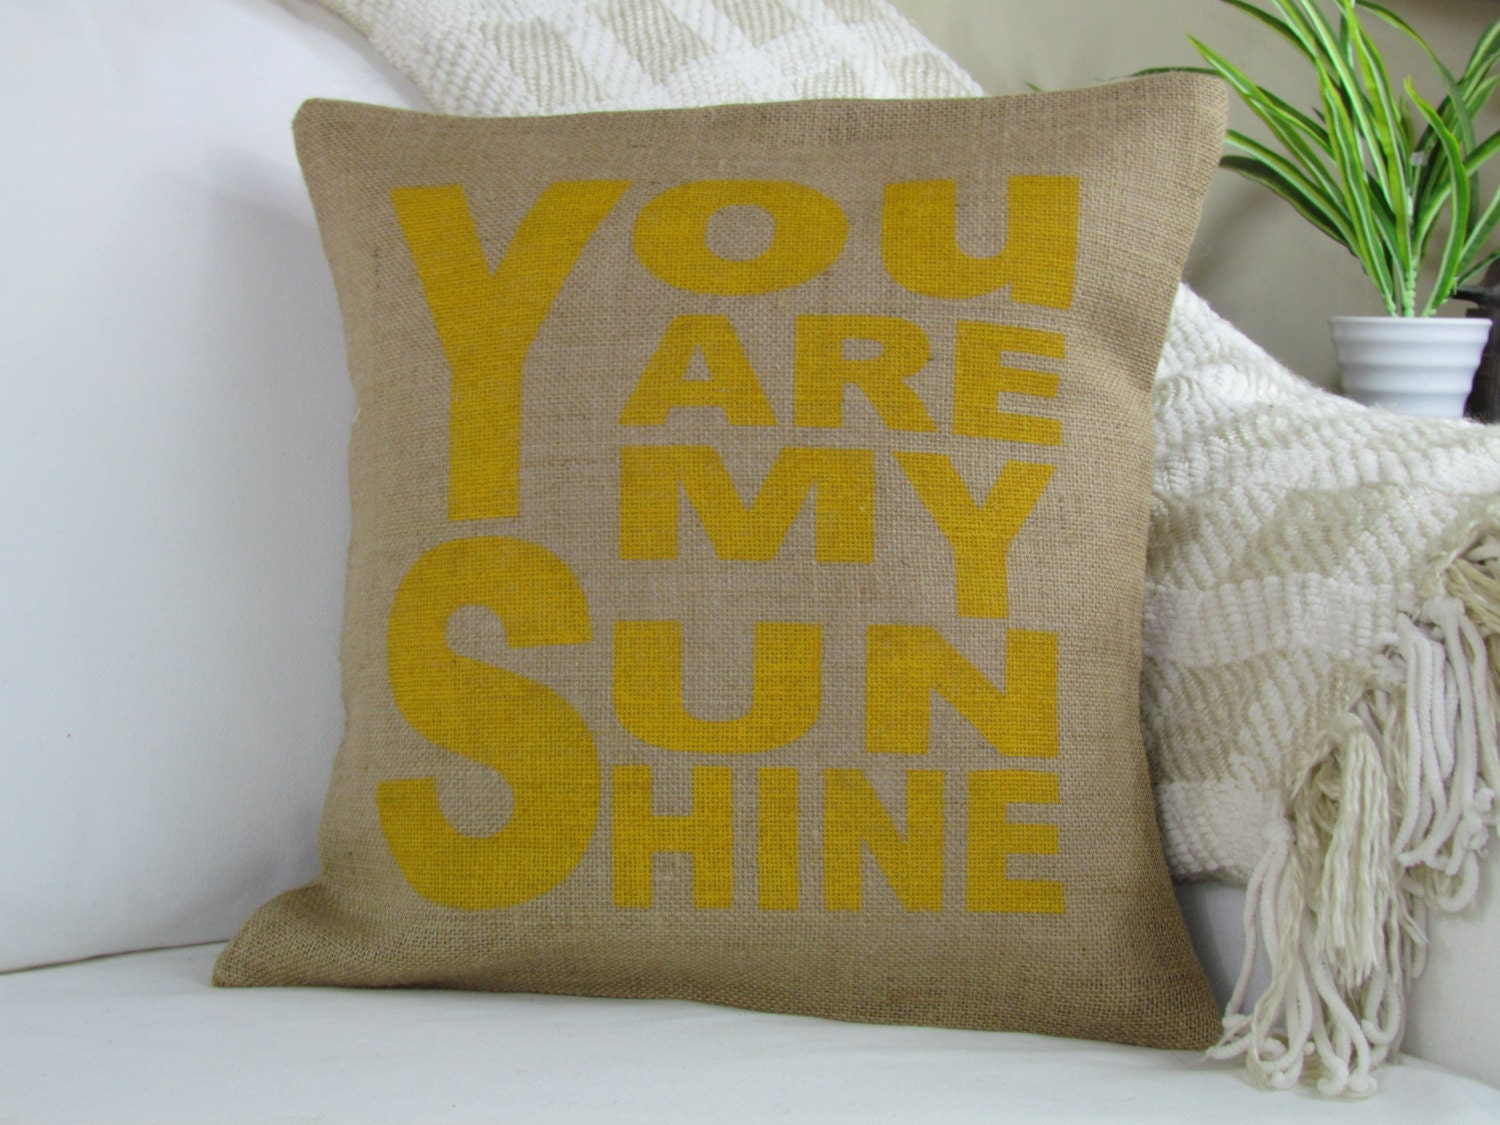 7 Inspiring Kid Room Color Options For Your Little Ones: You Are My Sunshine Pillow Nursery Pillow Decorative Pillow